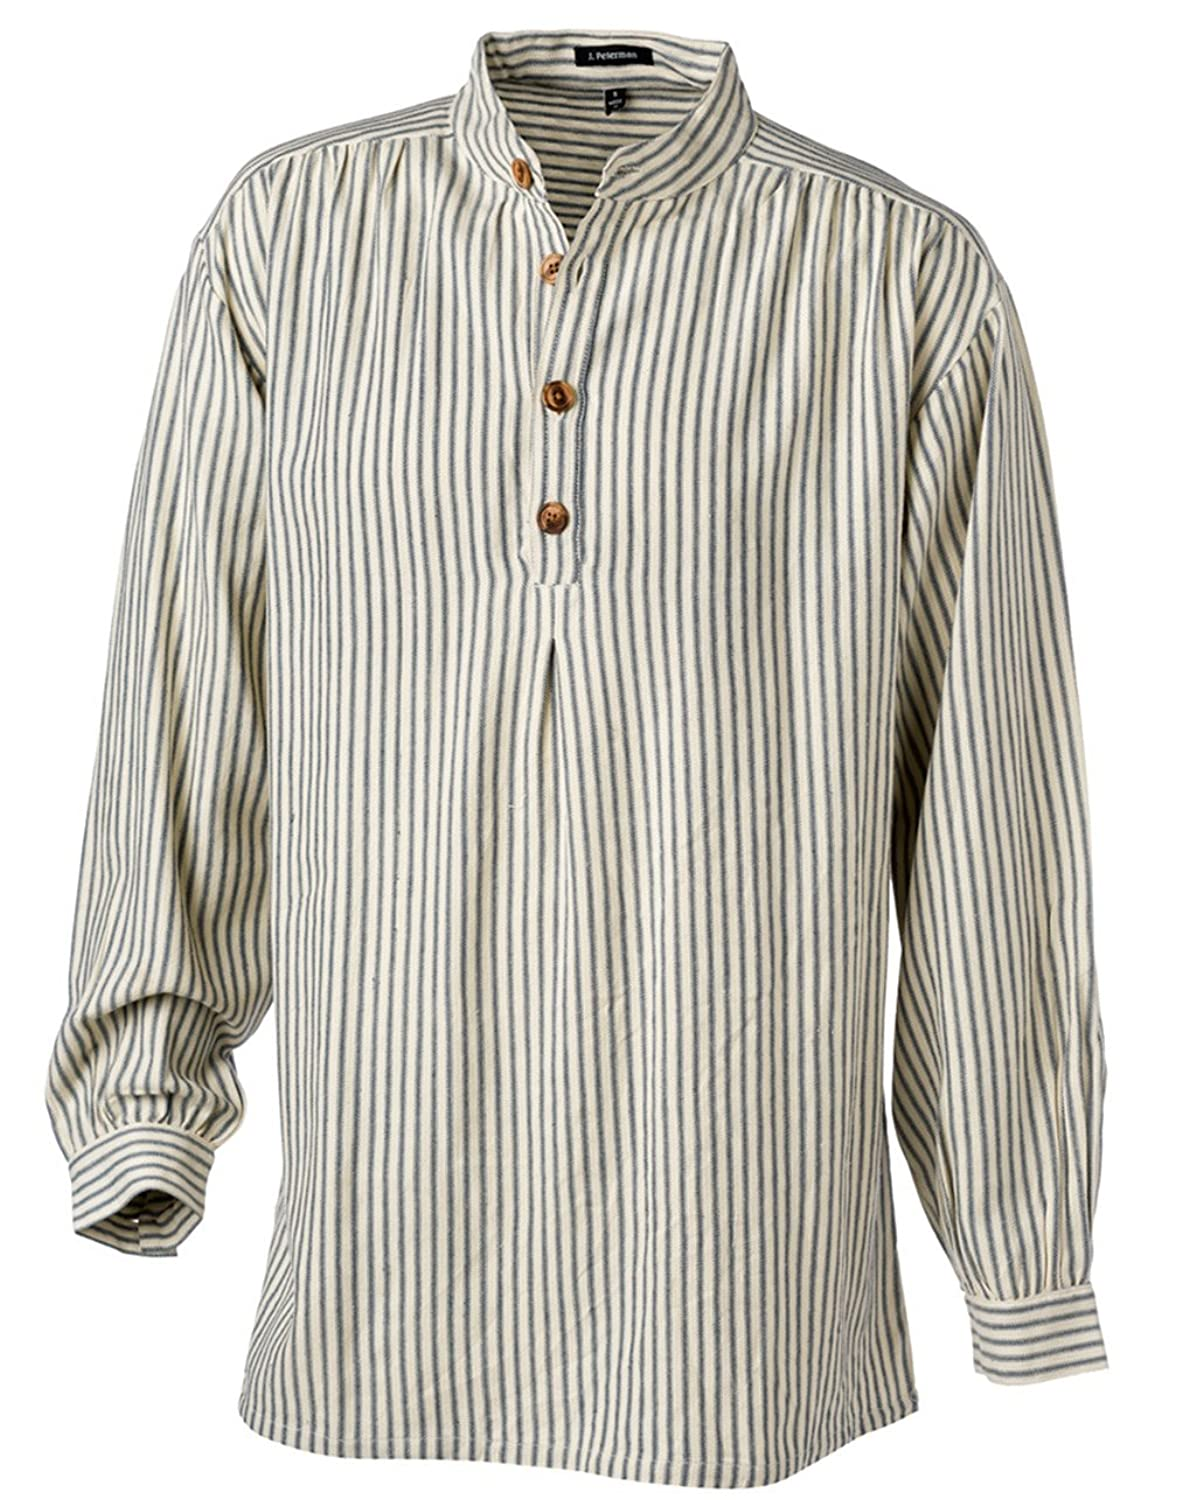 1920s Style Mens Shirts | Peaky Blinders Shirts and Collars The J. Peterman Shirt $56.35 AT vintagedancer.com